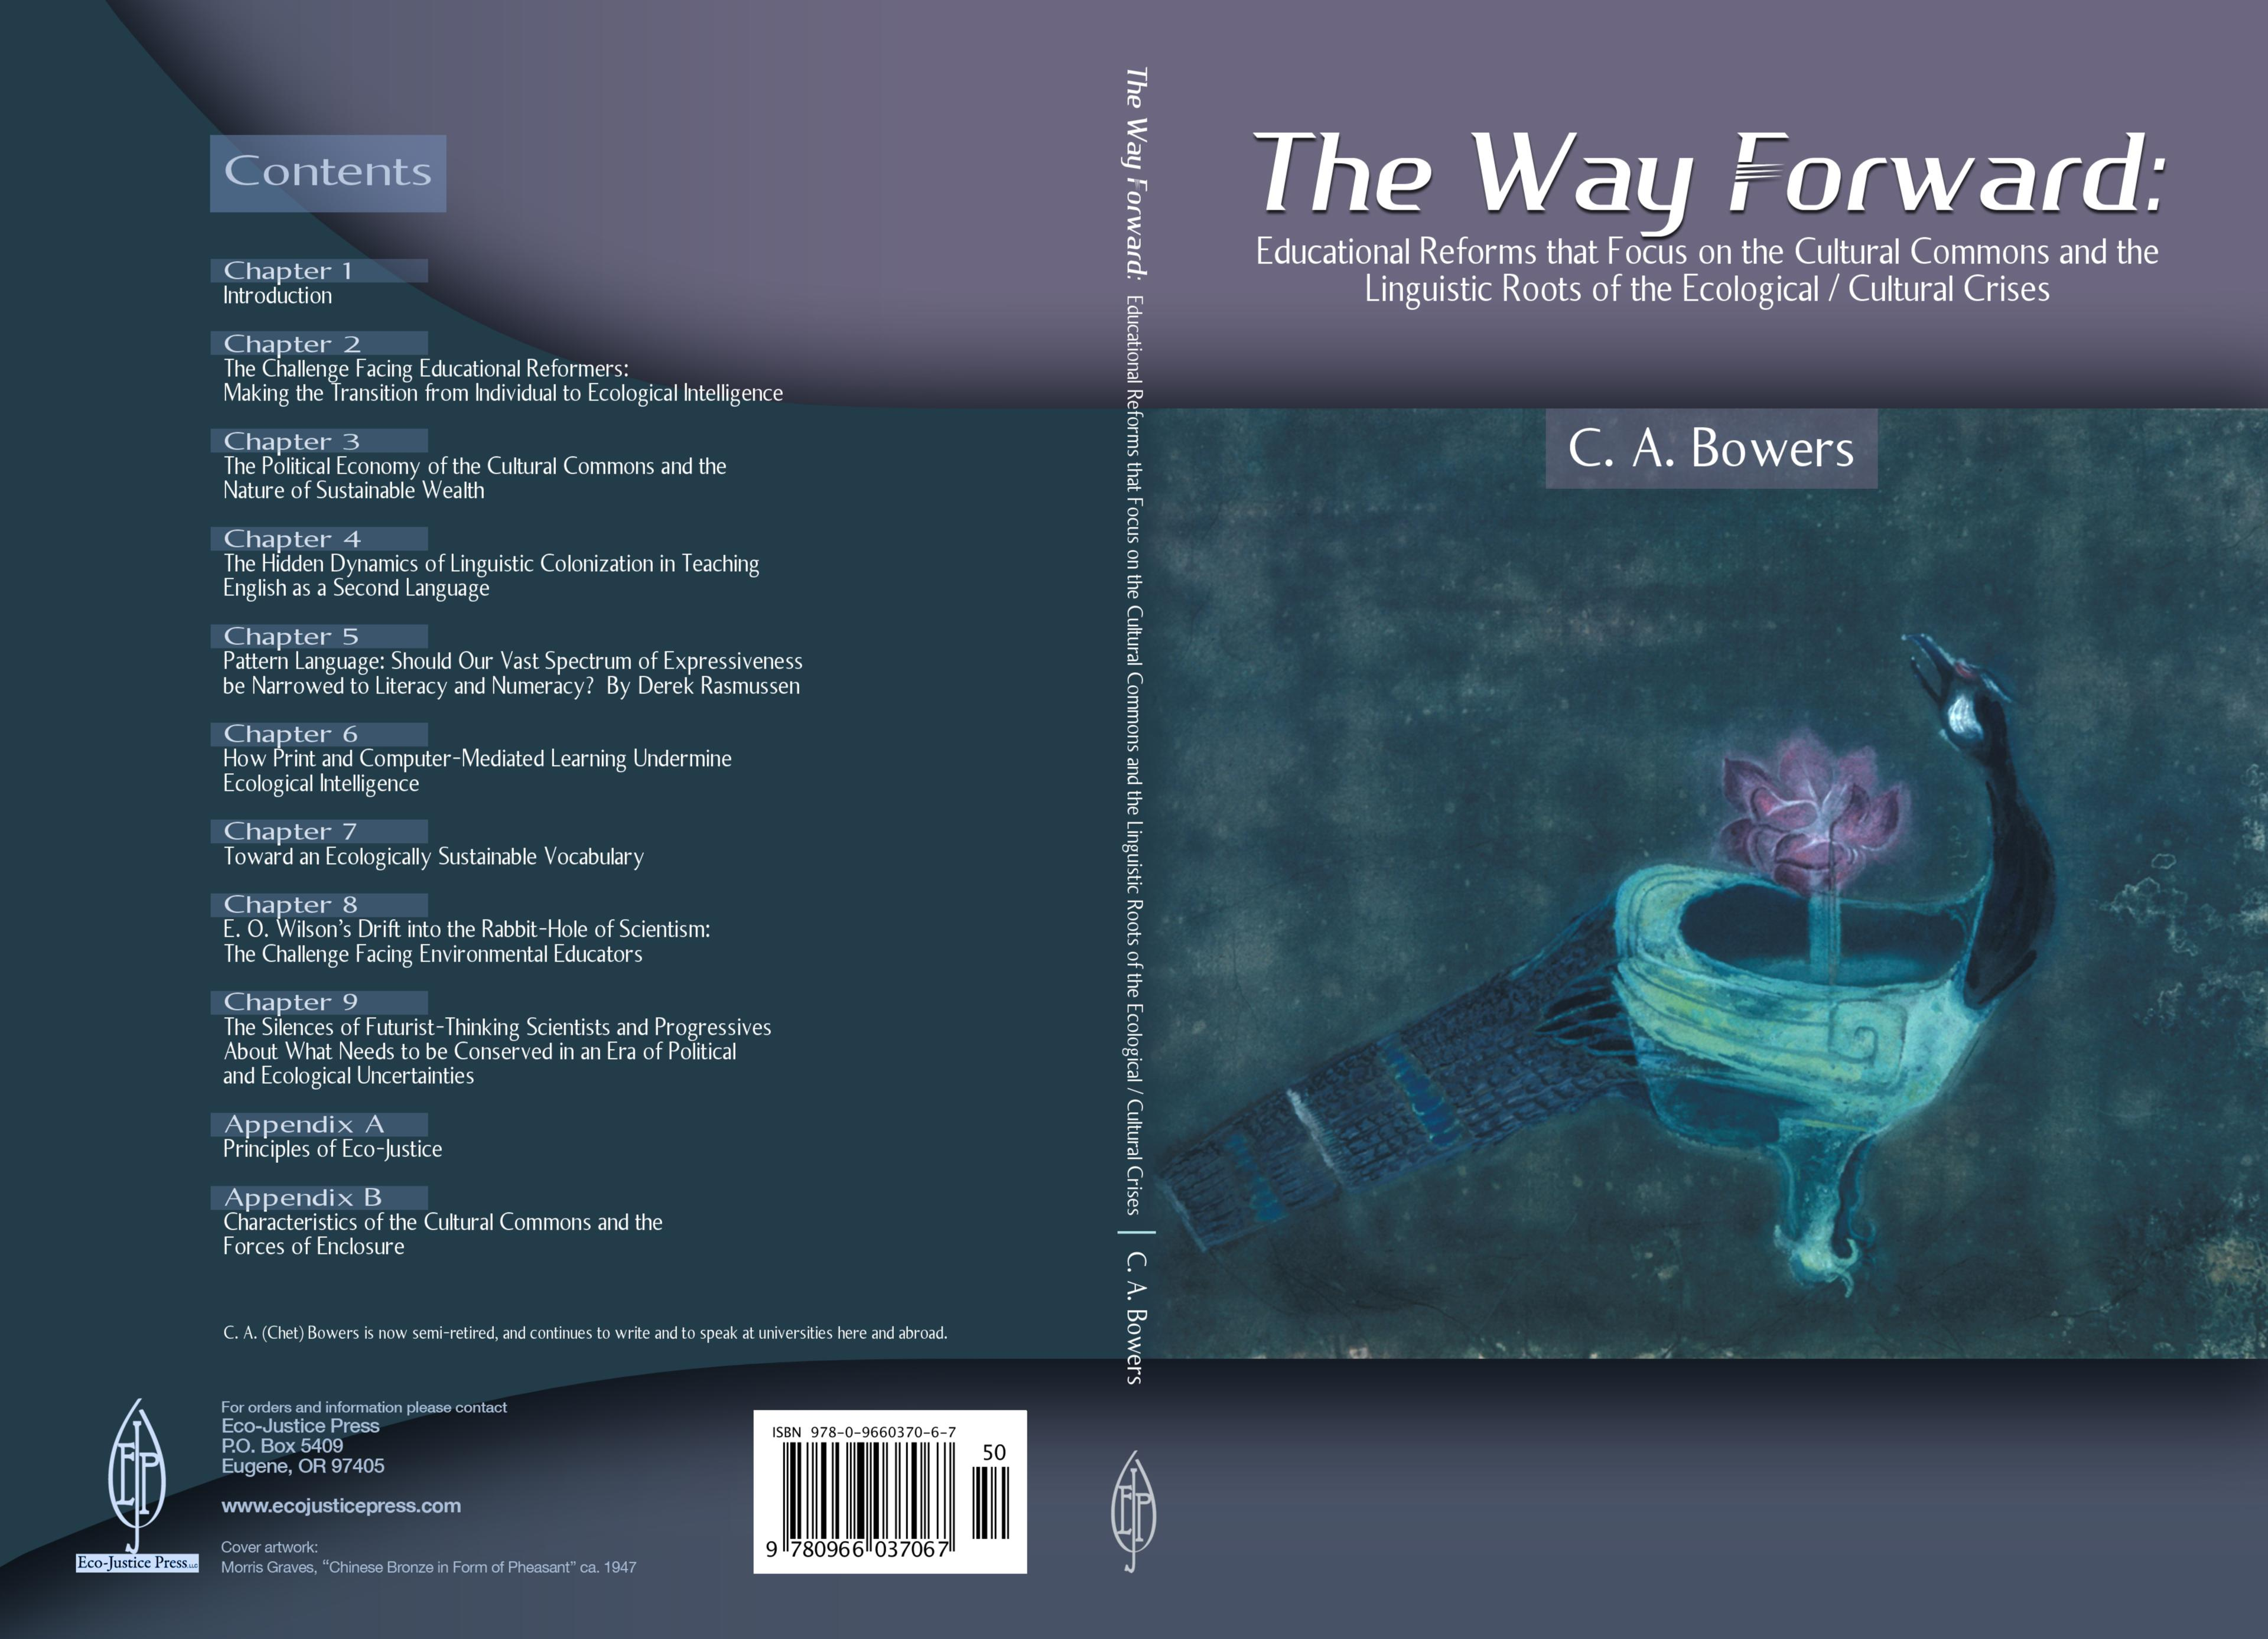 The Way Forward cover image